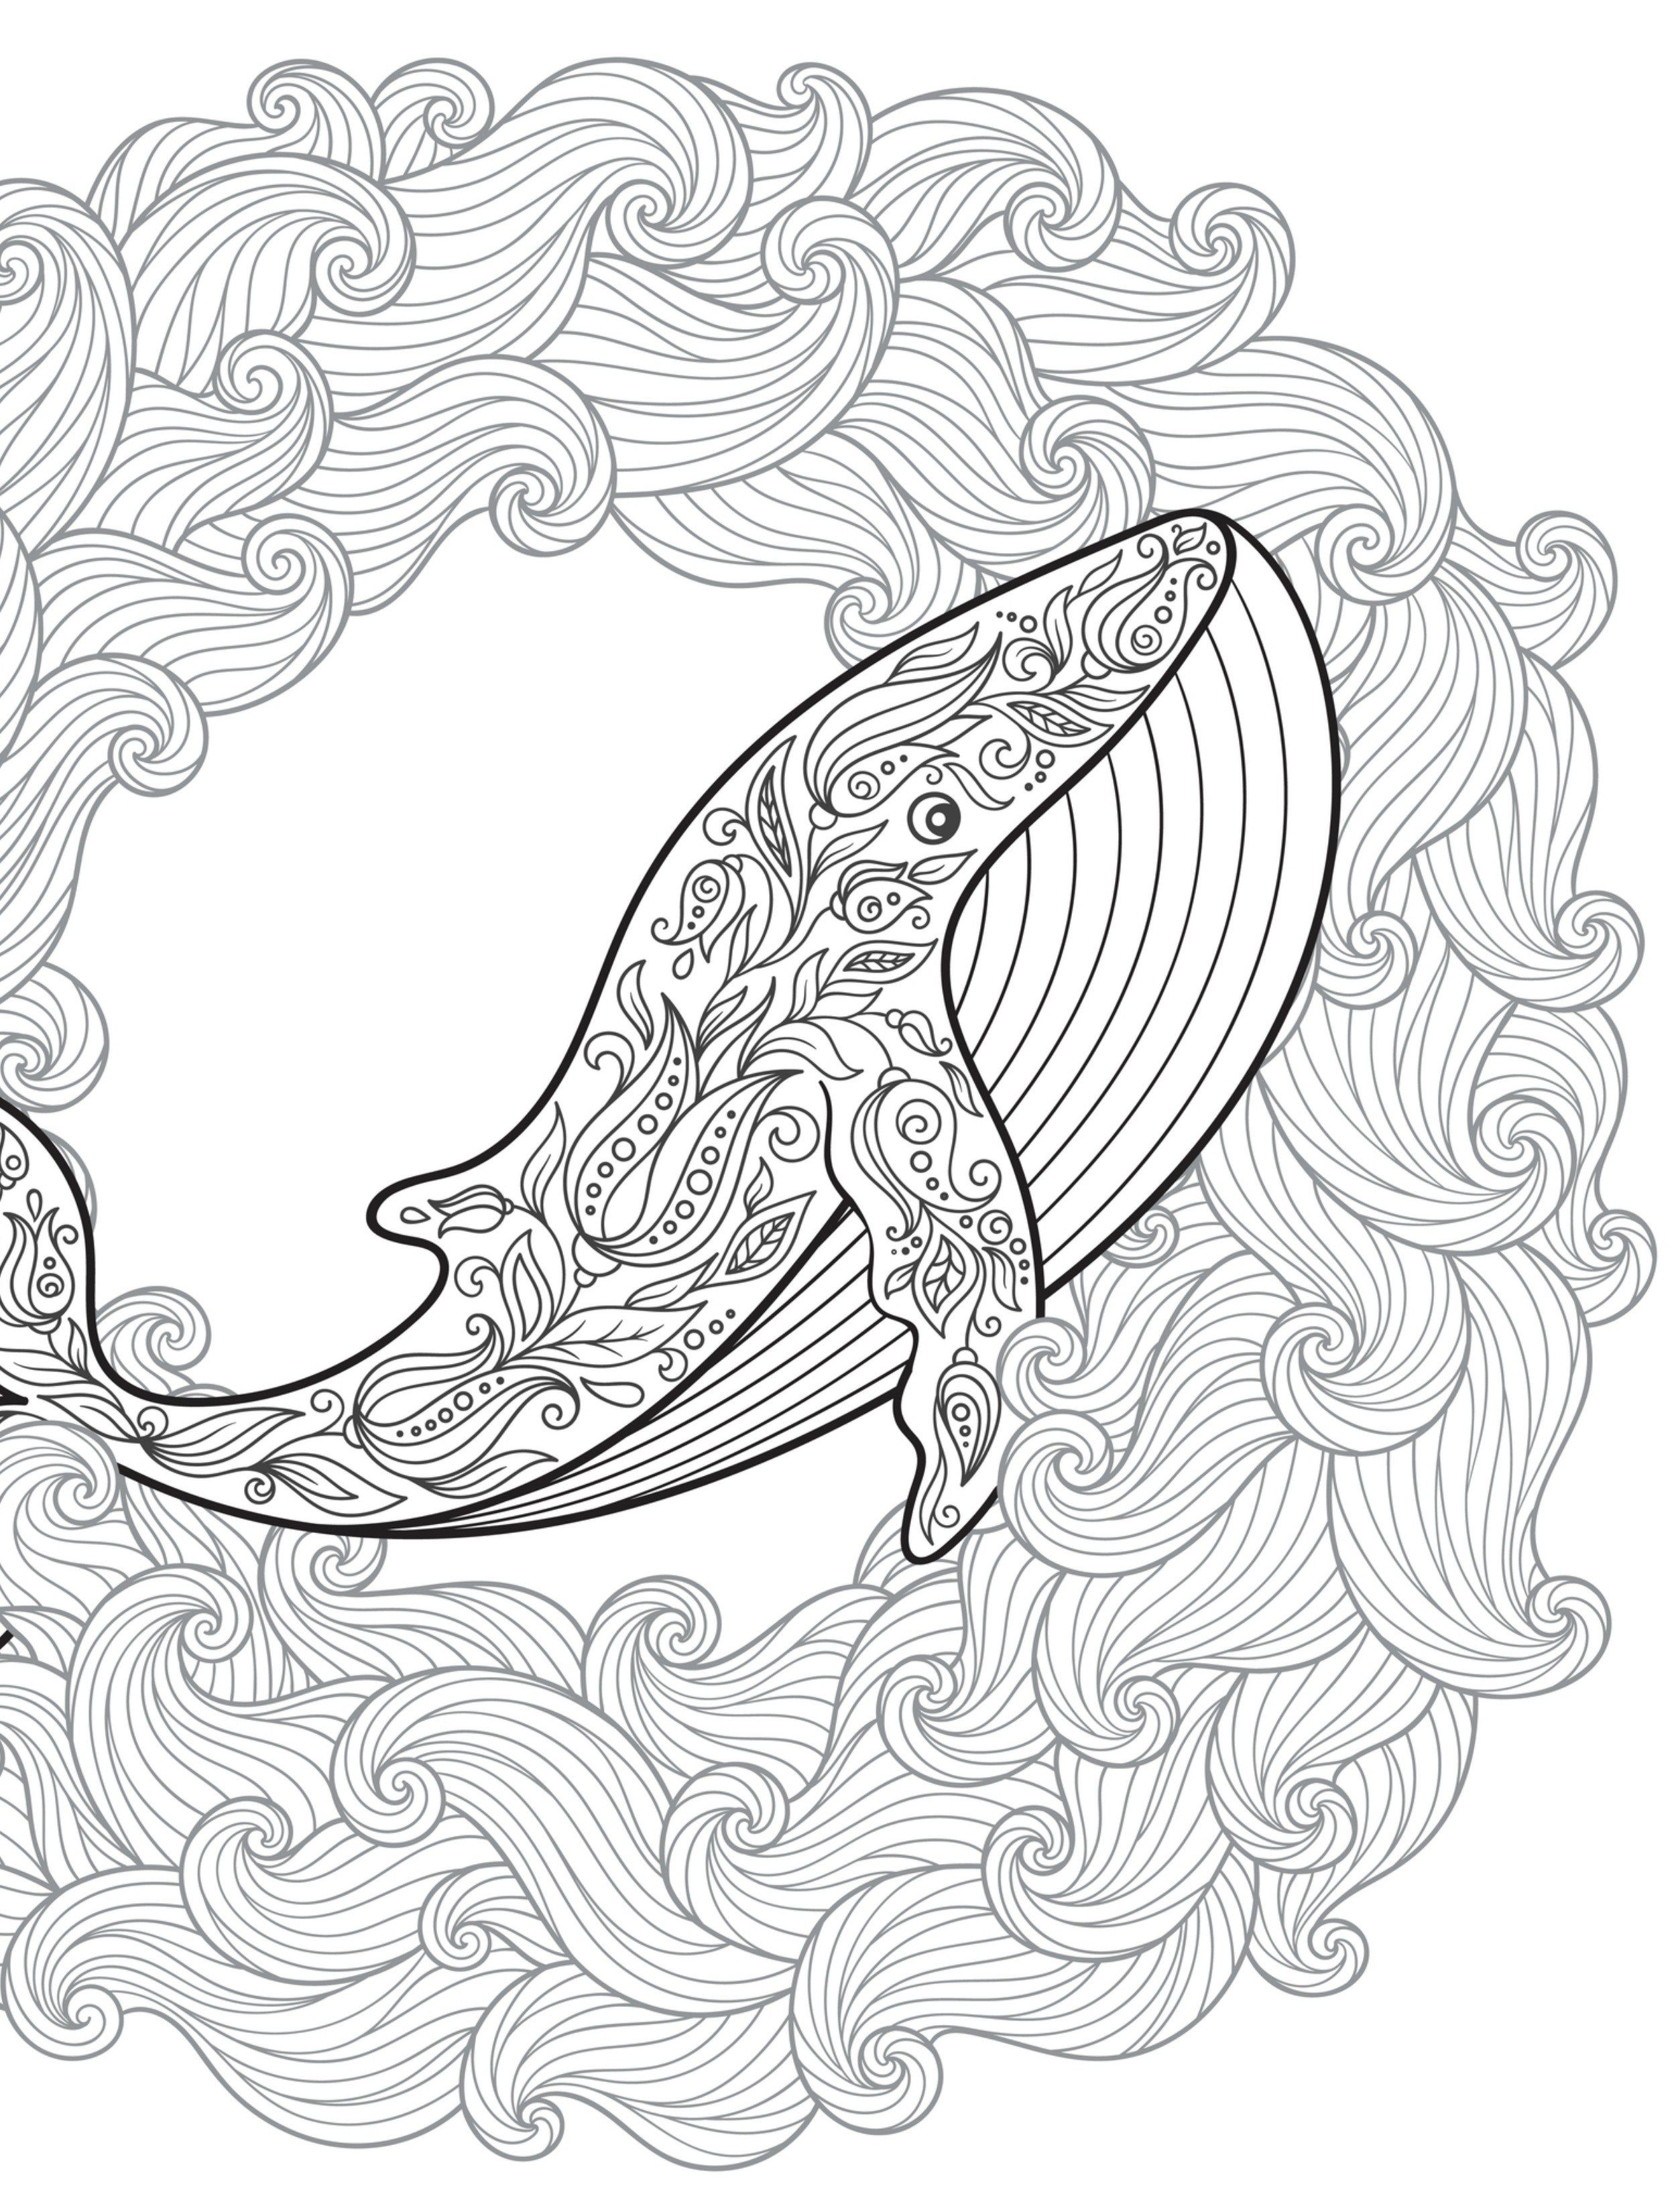 27 Anger Management Coloring Pages Collection